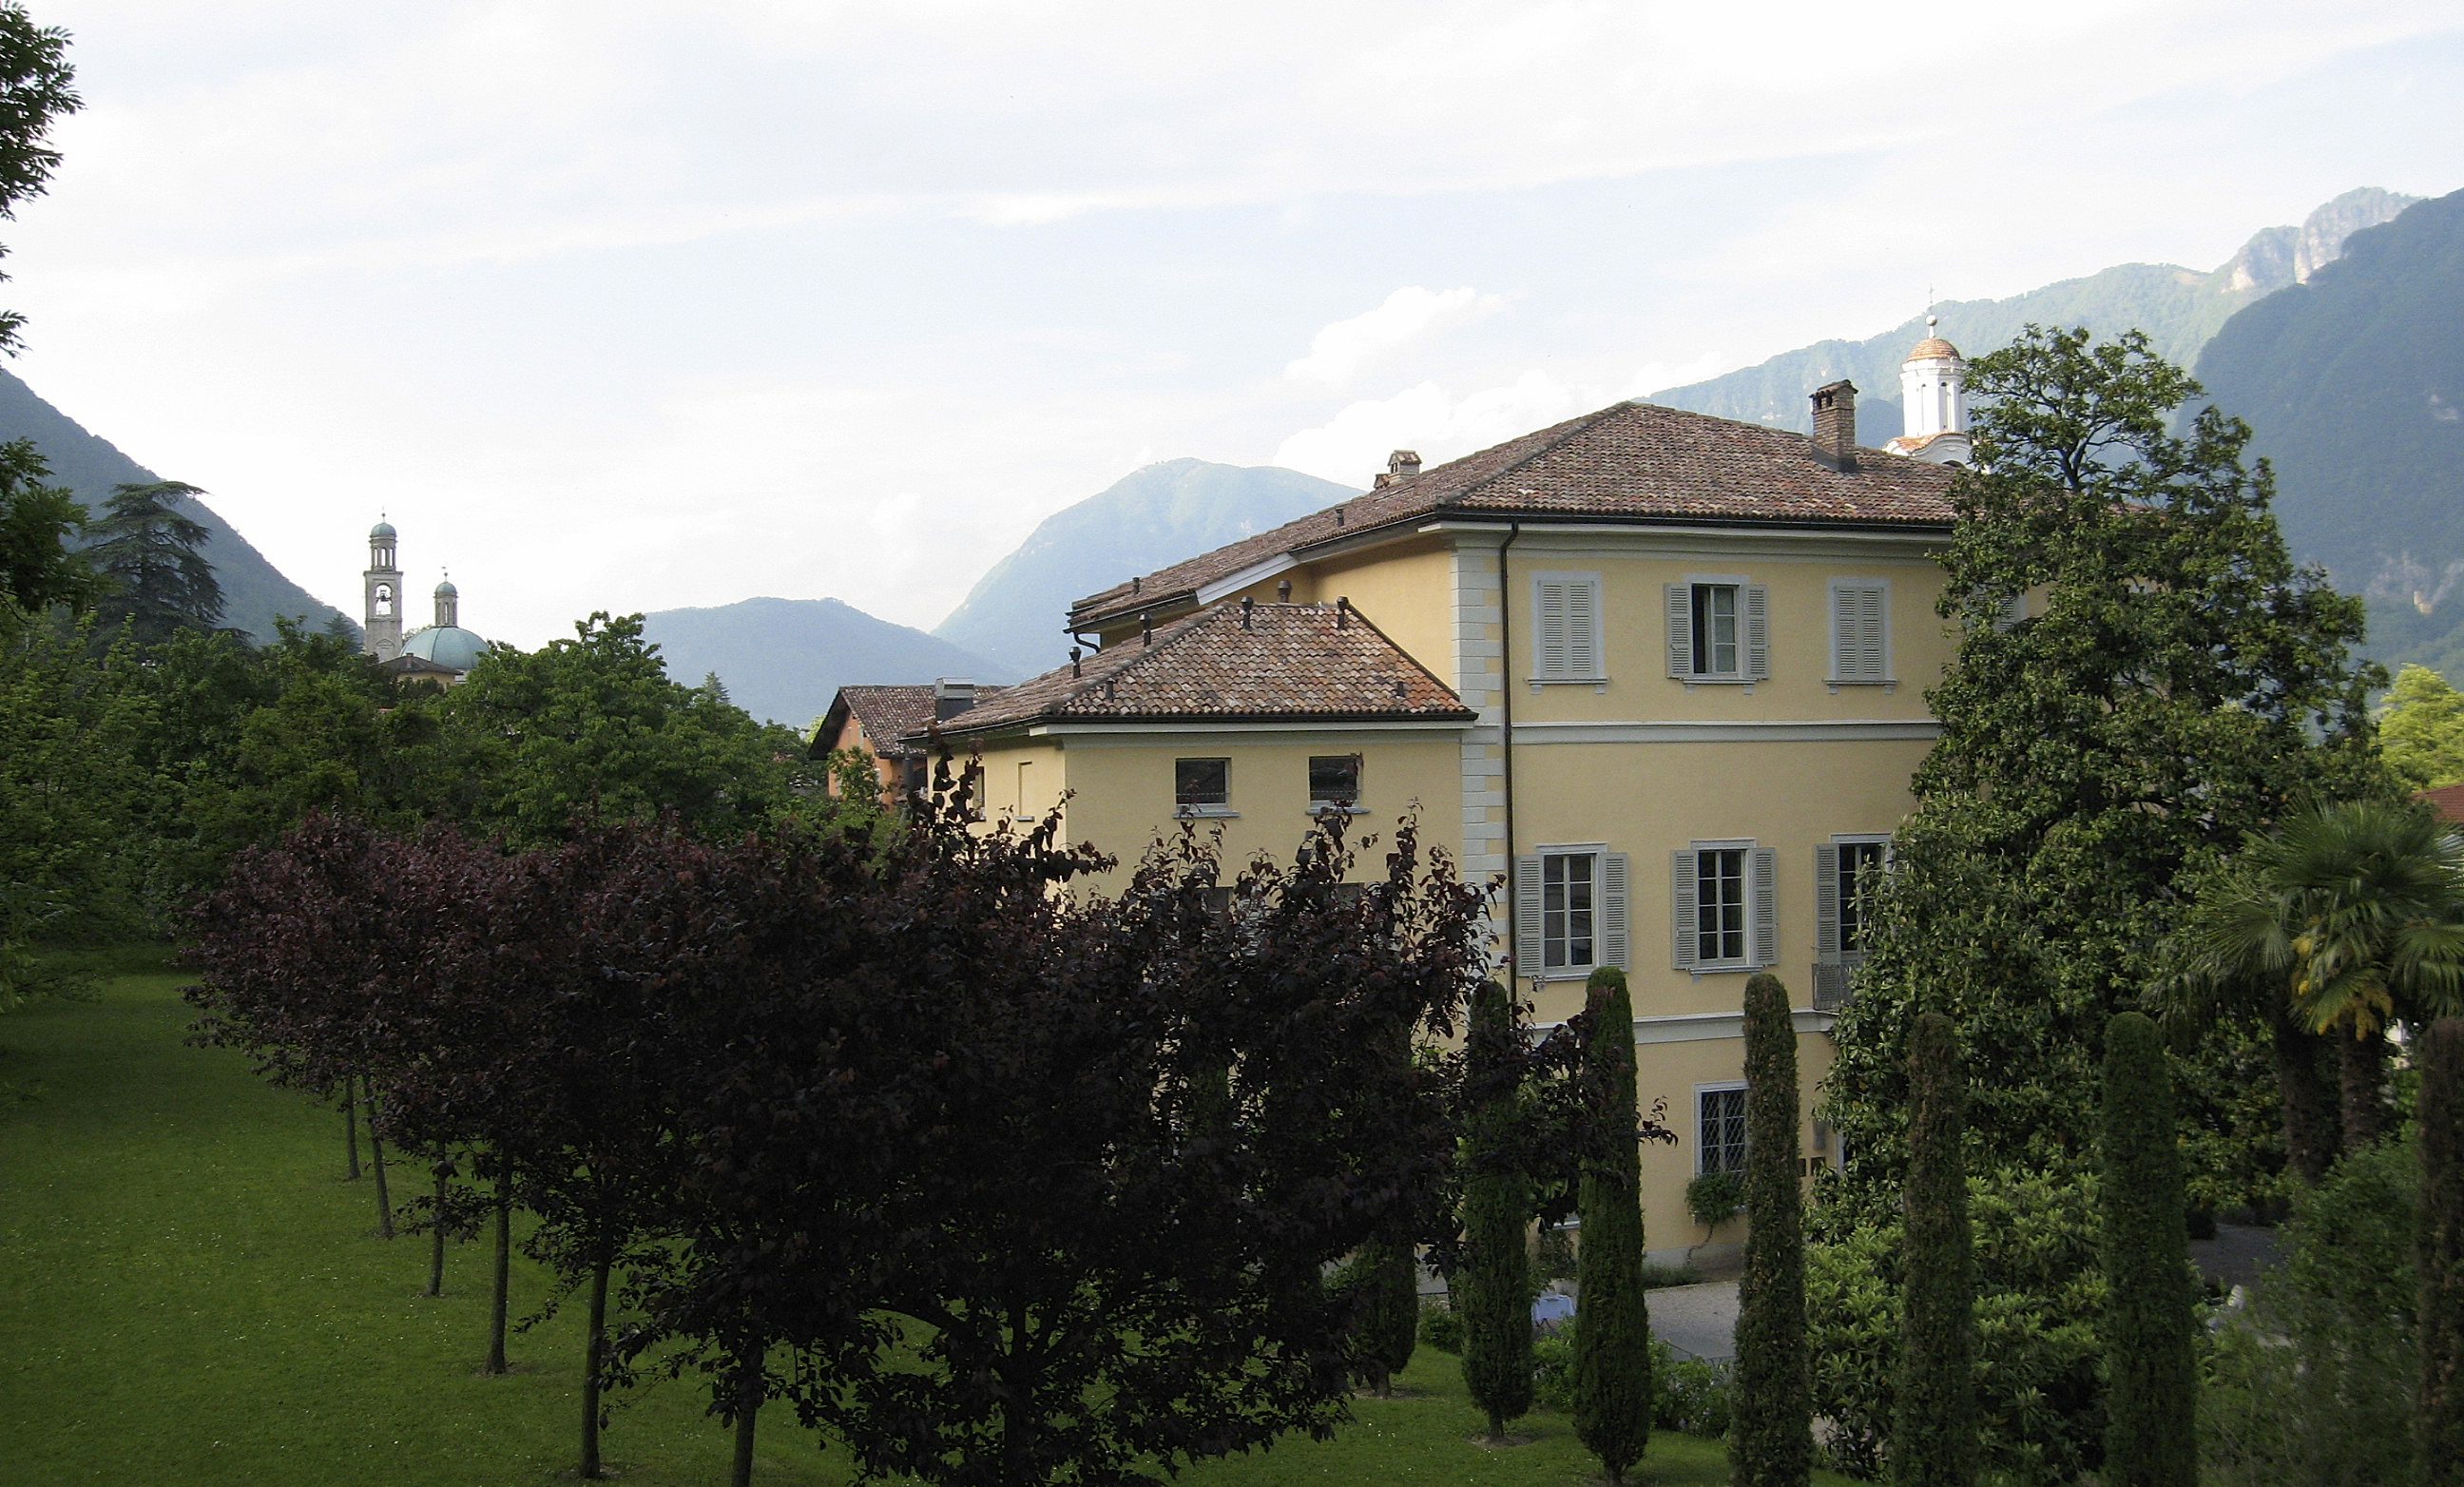 Casa Maderni, Center for European Studies and Architecture, in Riva San Vitale, Switzerland